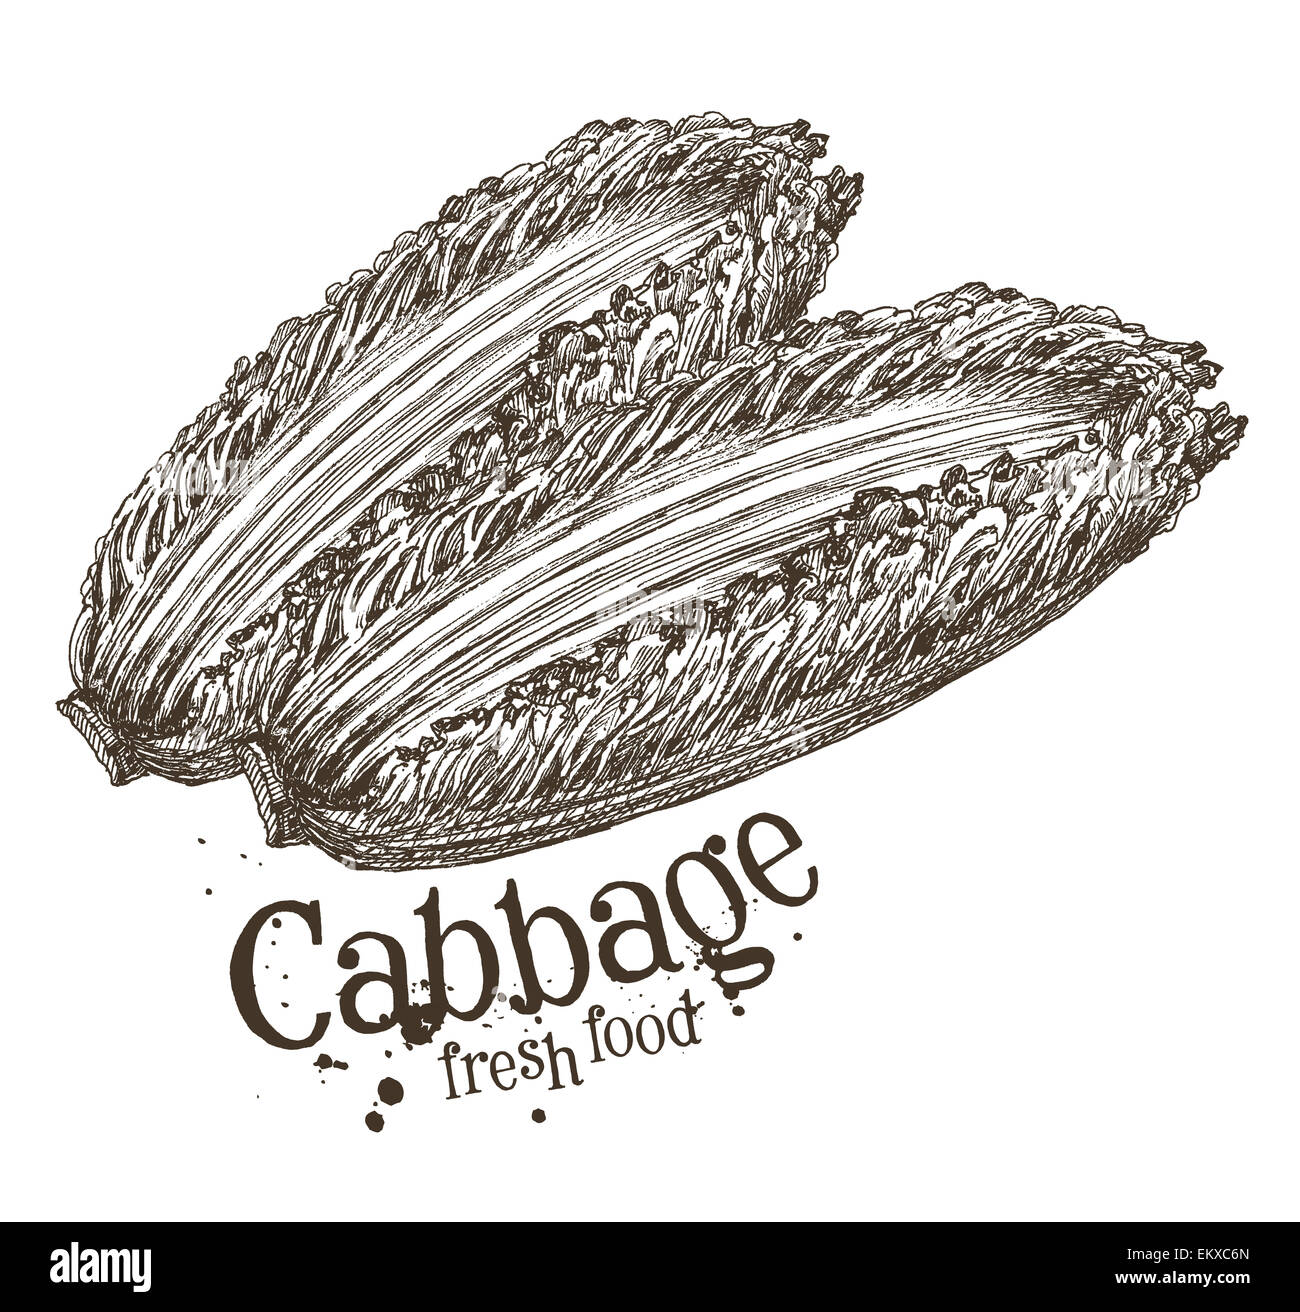 ripe cabbage vector logo design template fresh vegetables food or